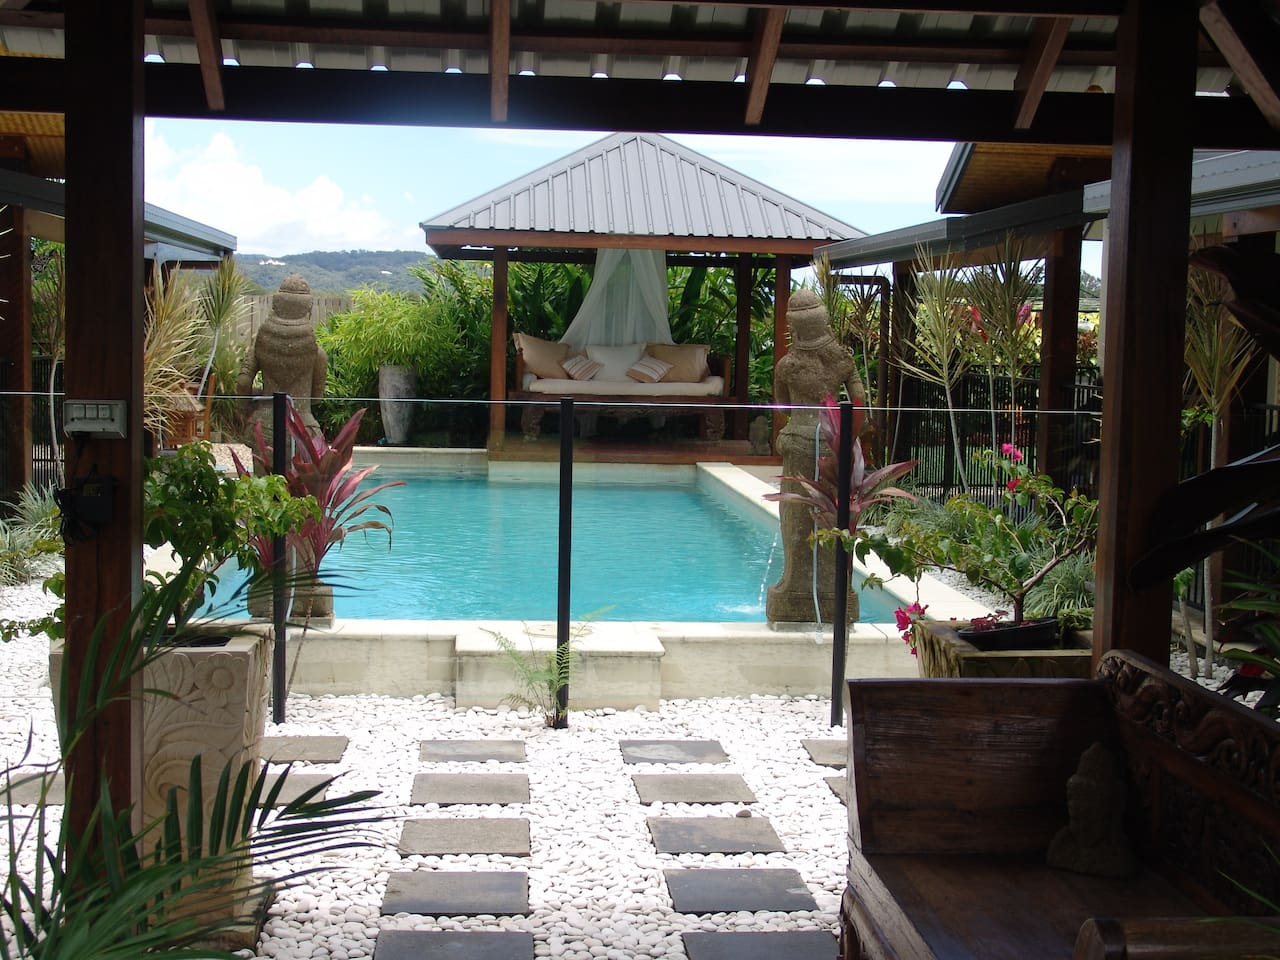 The pool through the front entrance gazebo